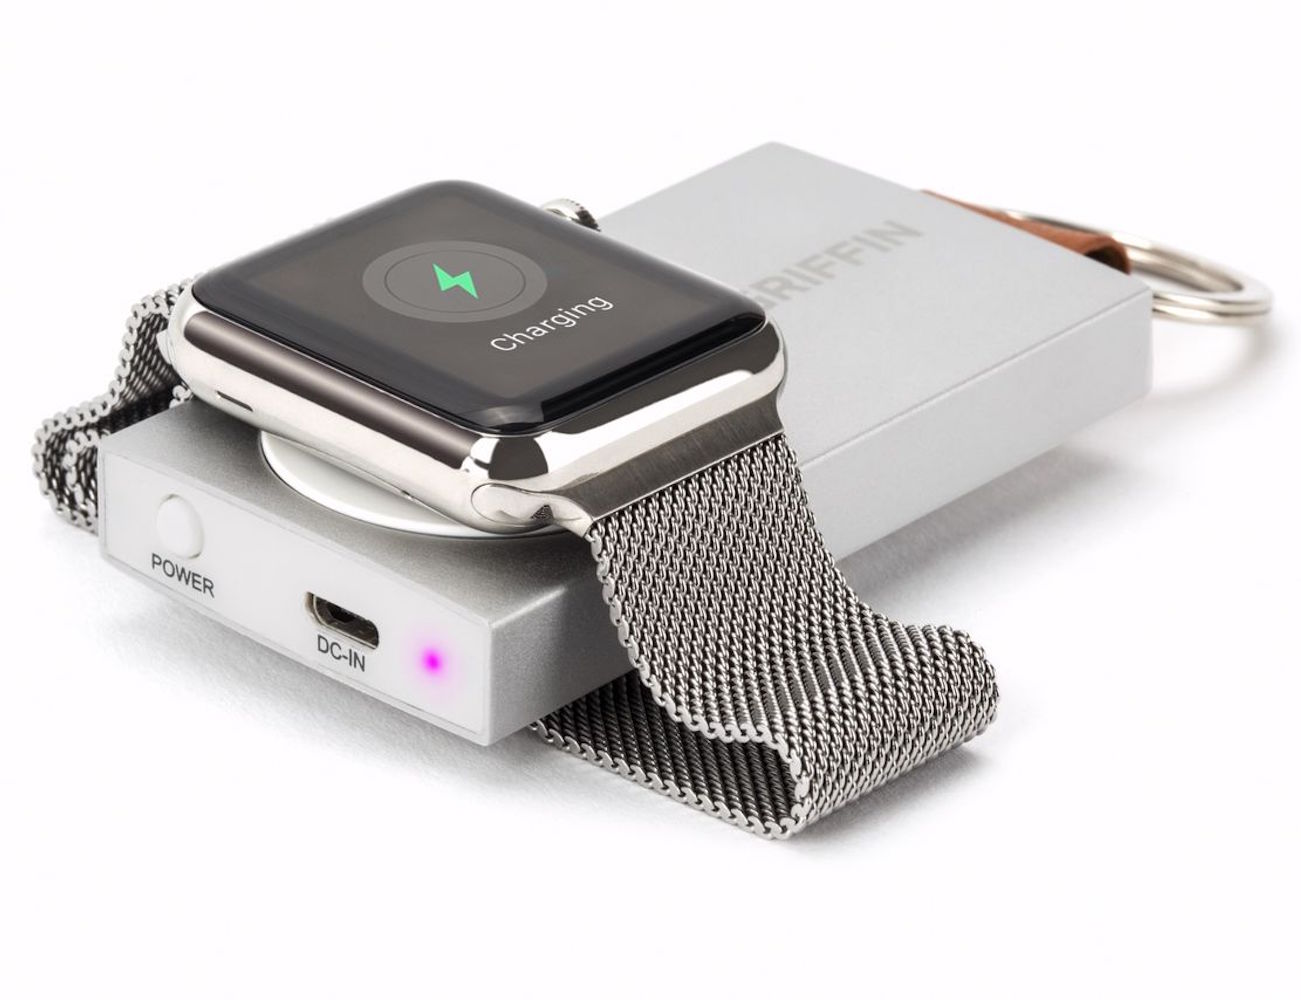 travel-power-bank-by-griffin-keychain-sized-external-battery-for-apple-watch-02